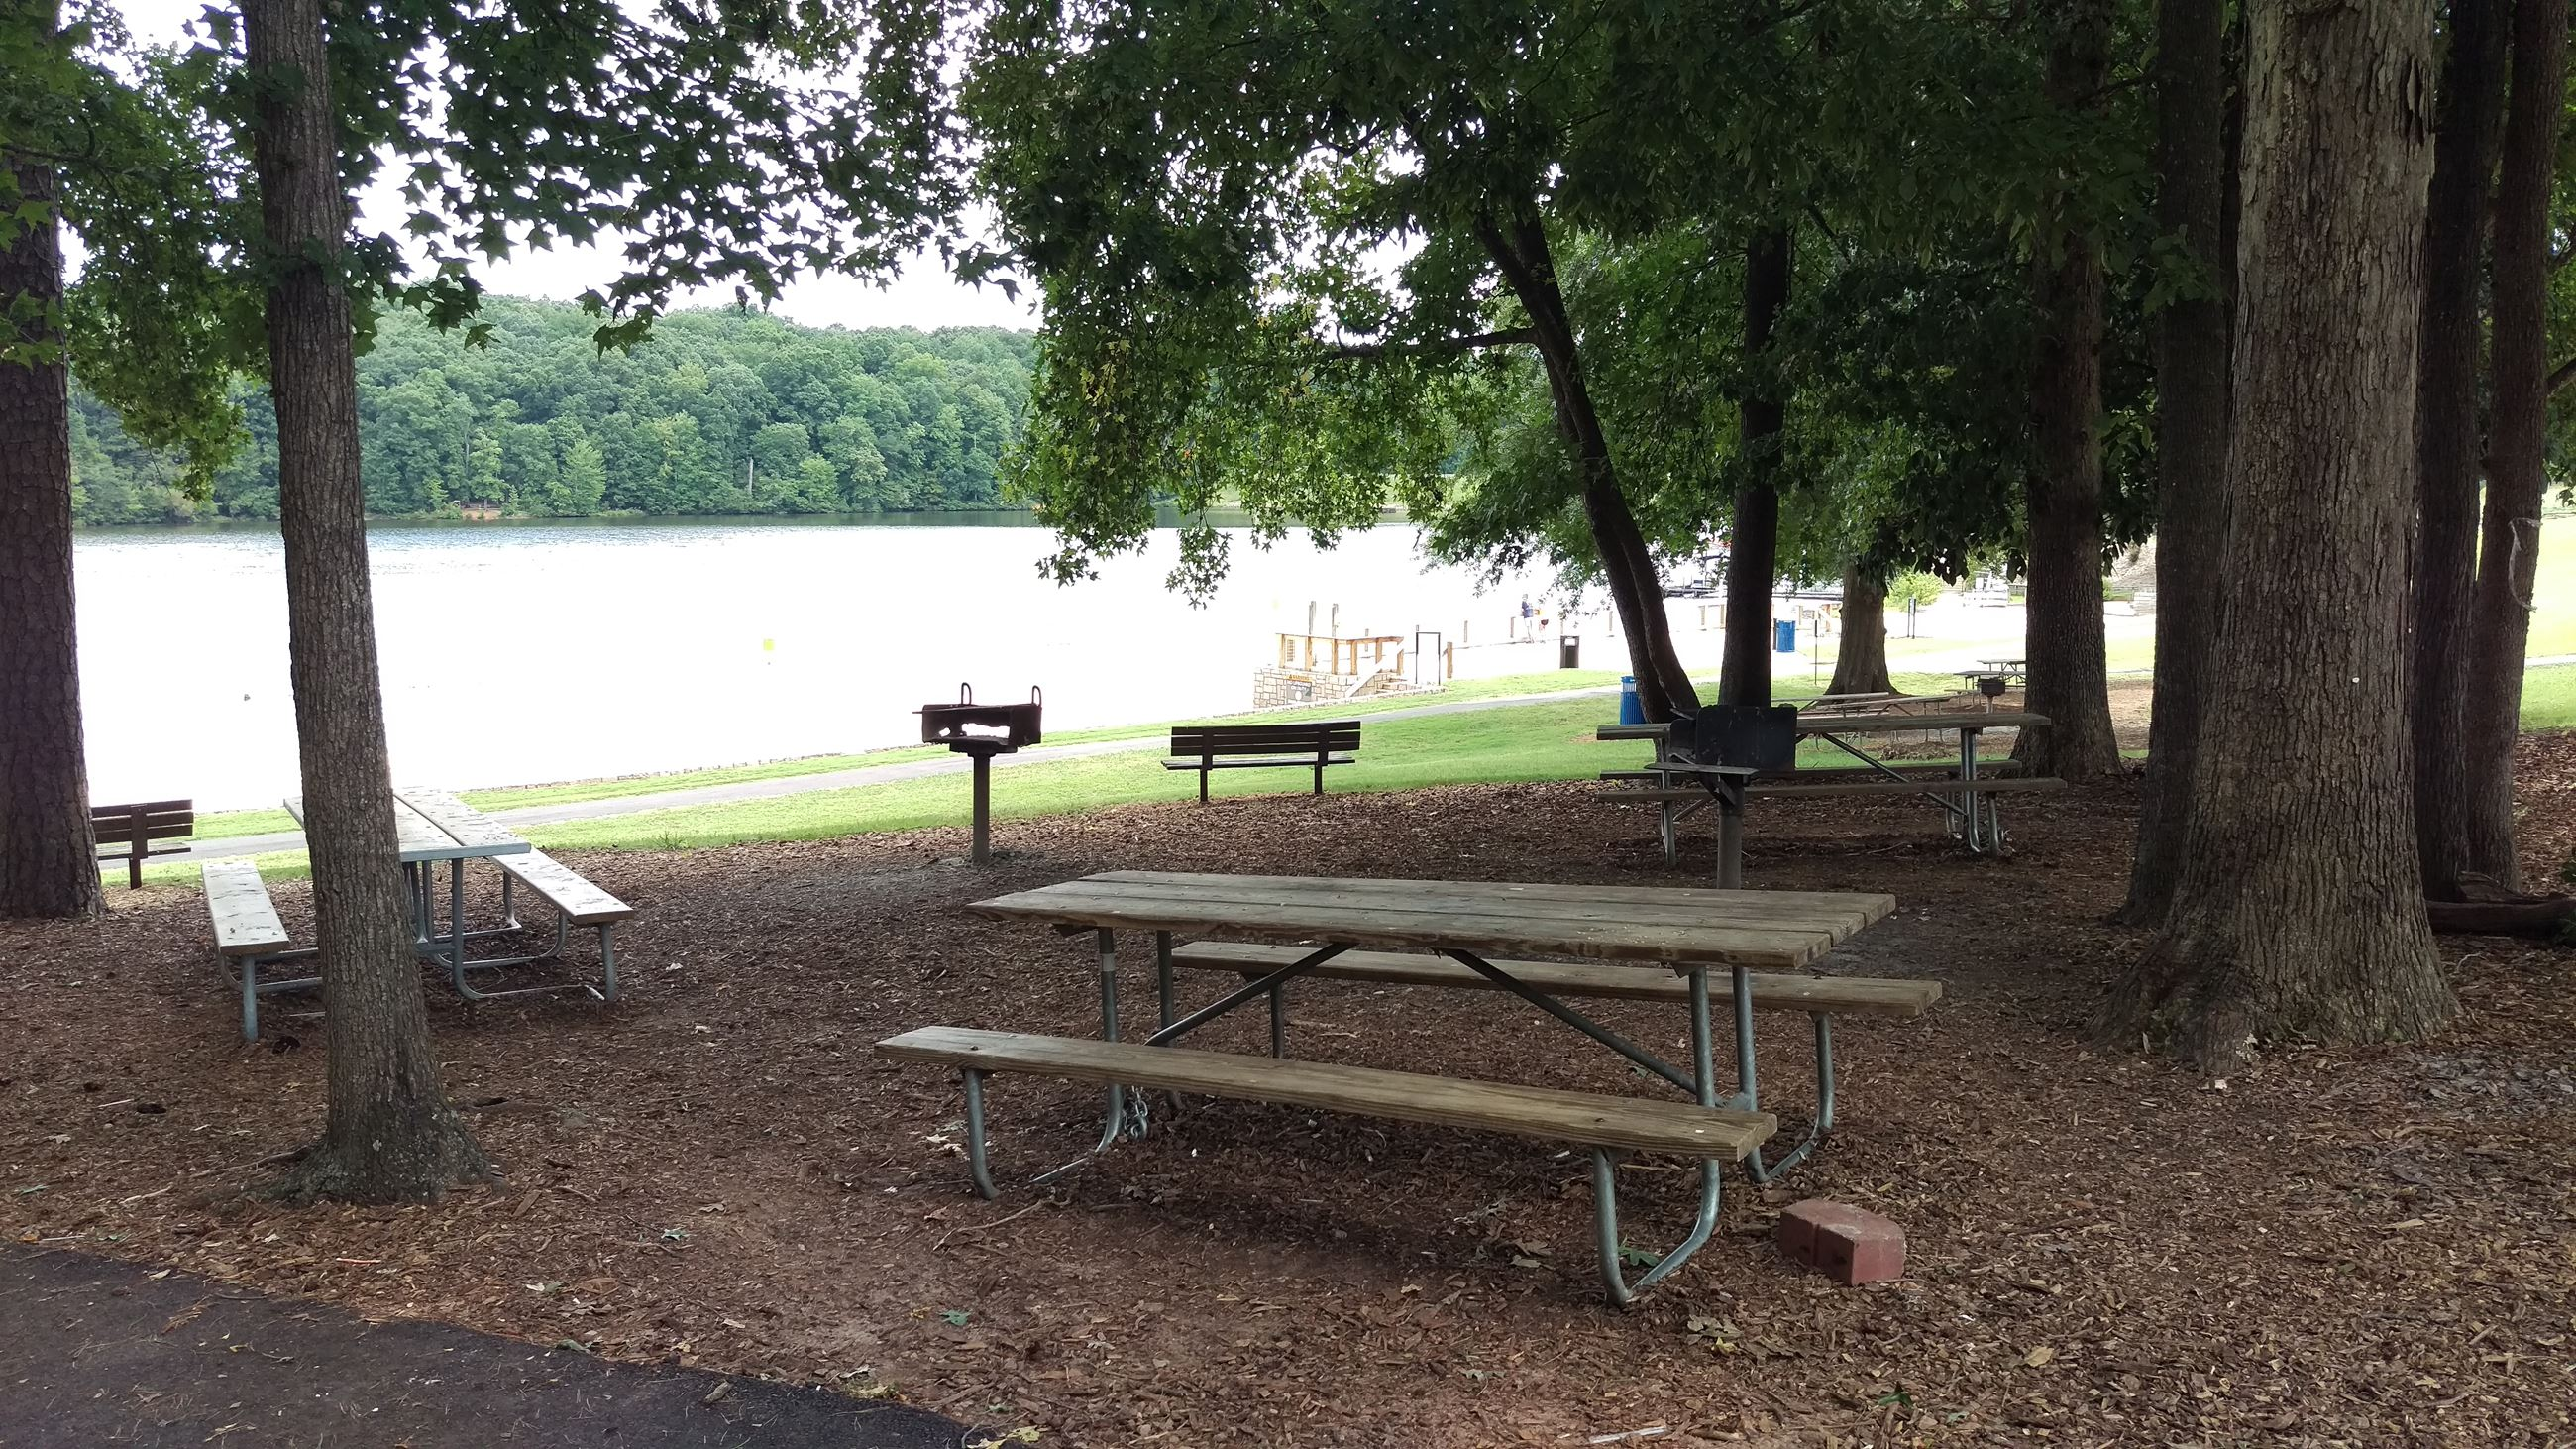 Photo of Picnic Area 2 at Sandy Creek Park.